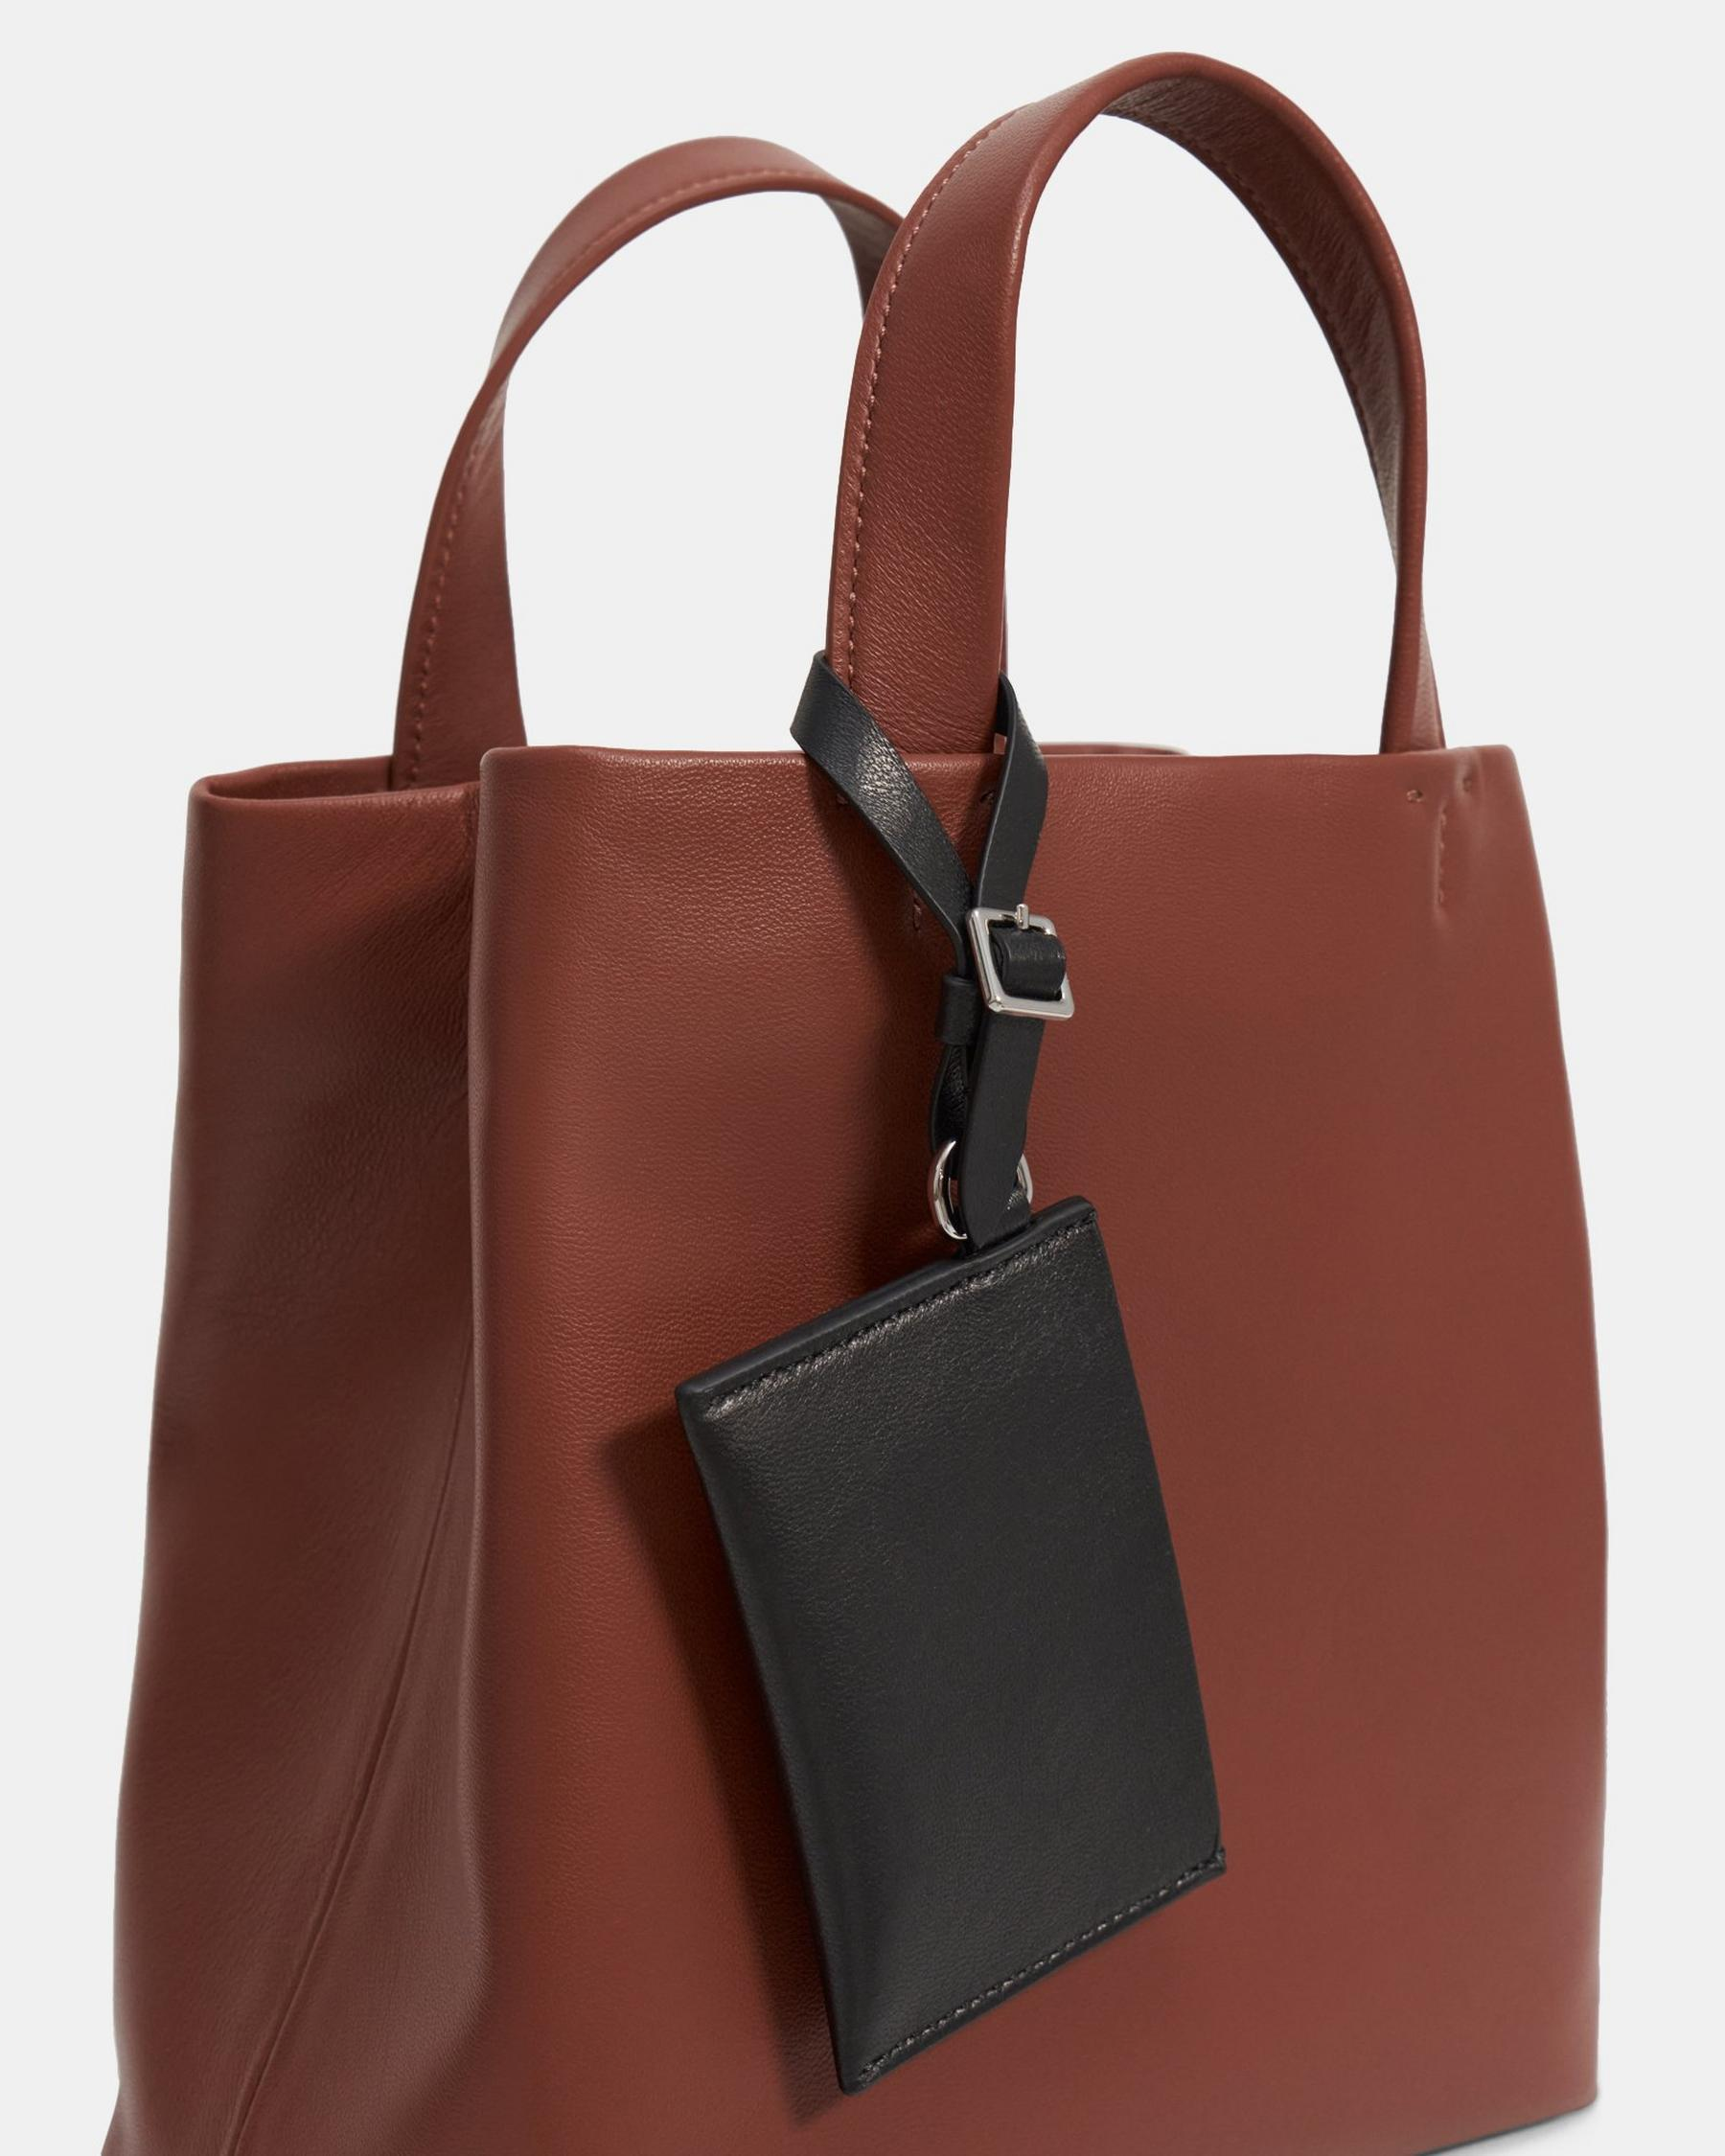 Small Simple Tote in Leather 2